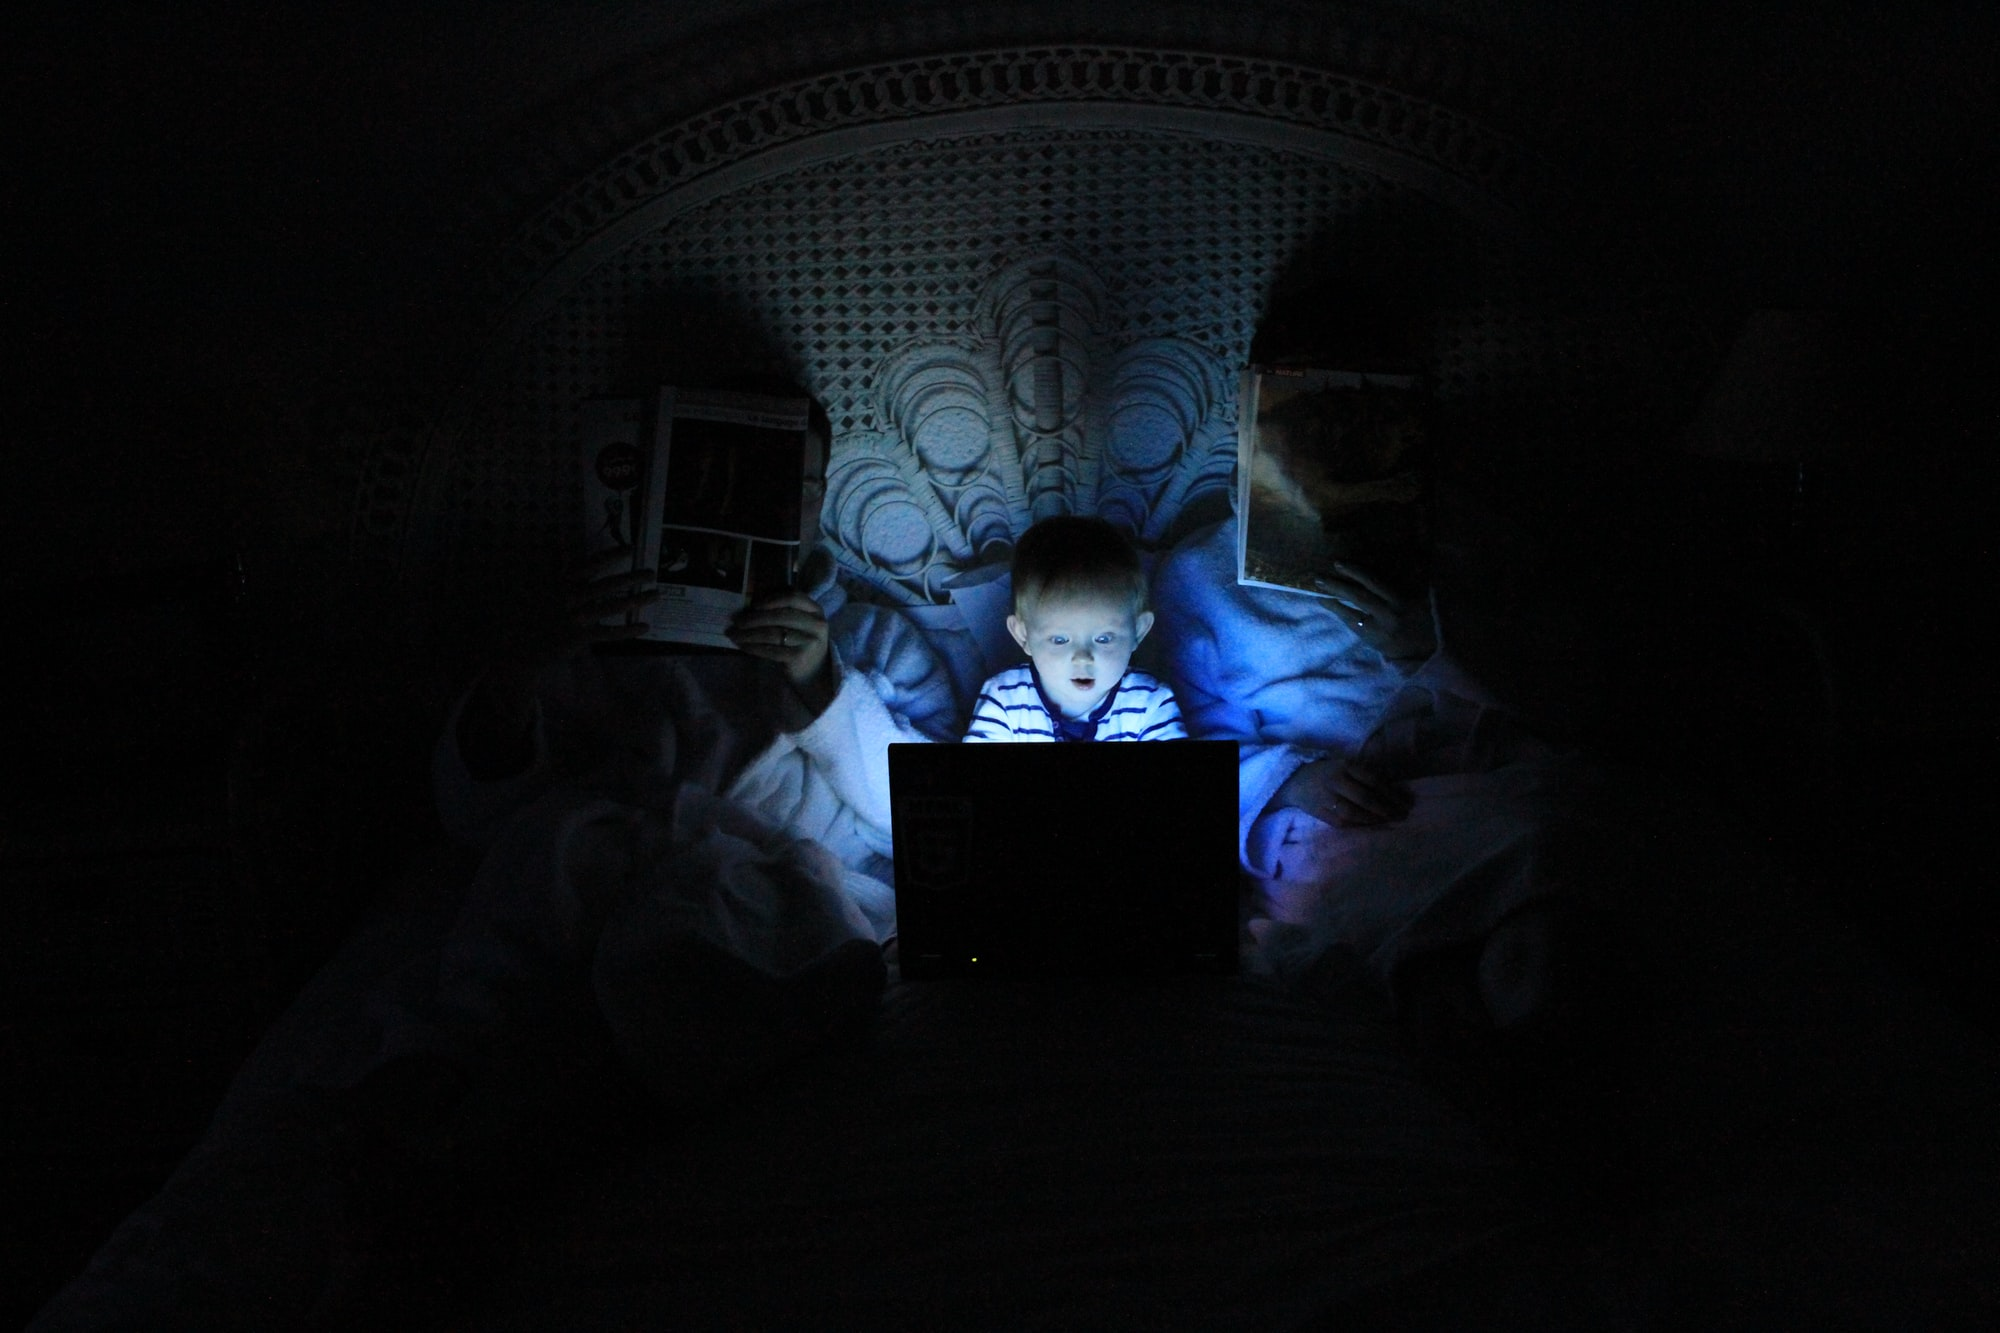 child in front of laptop